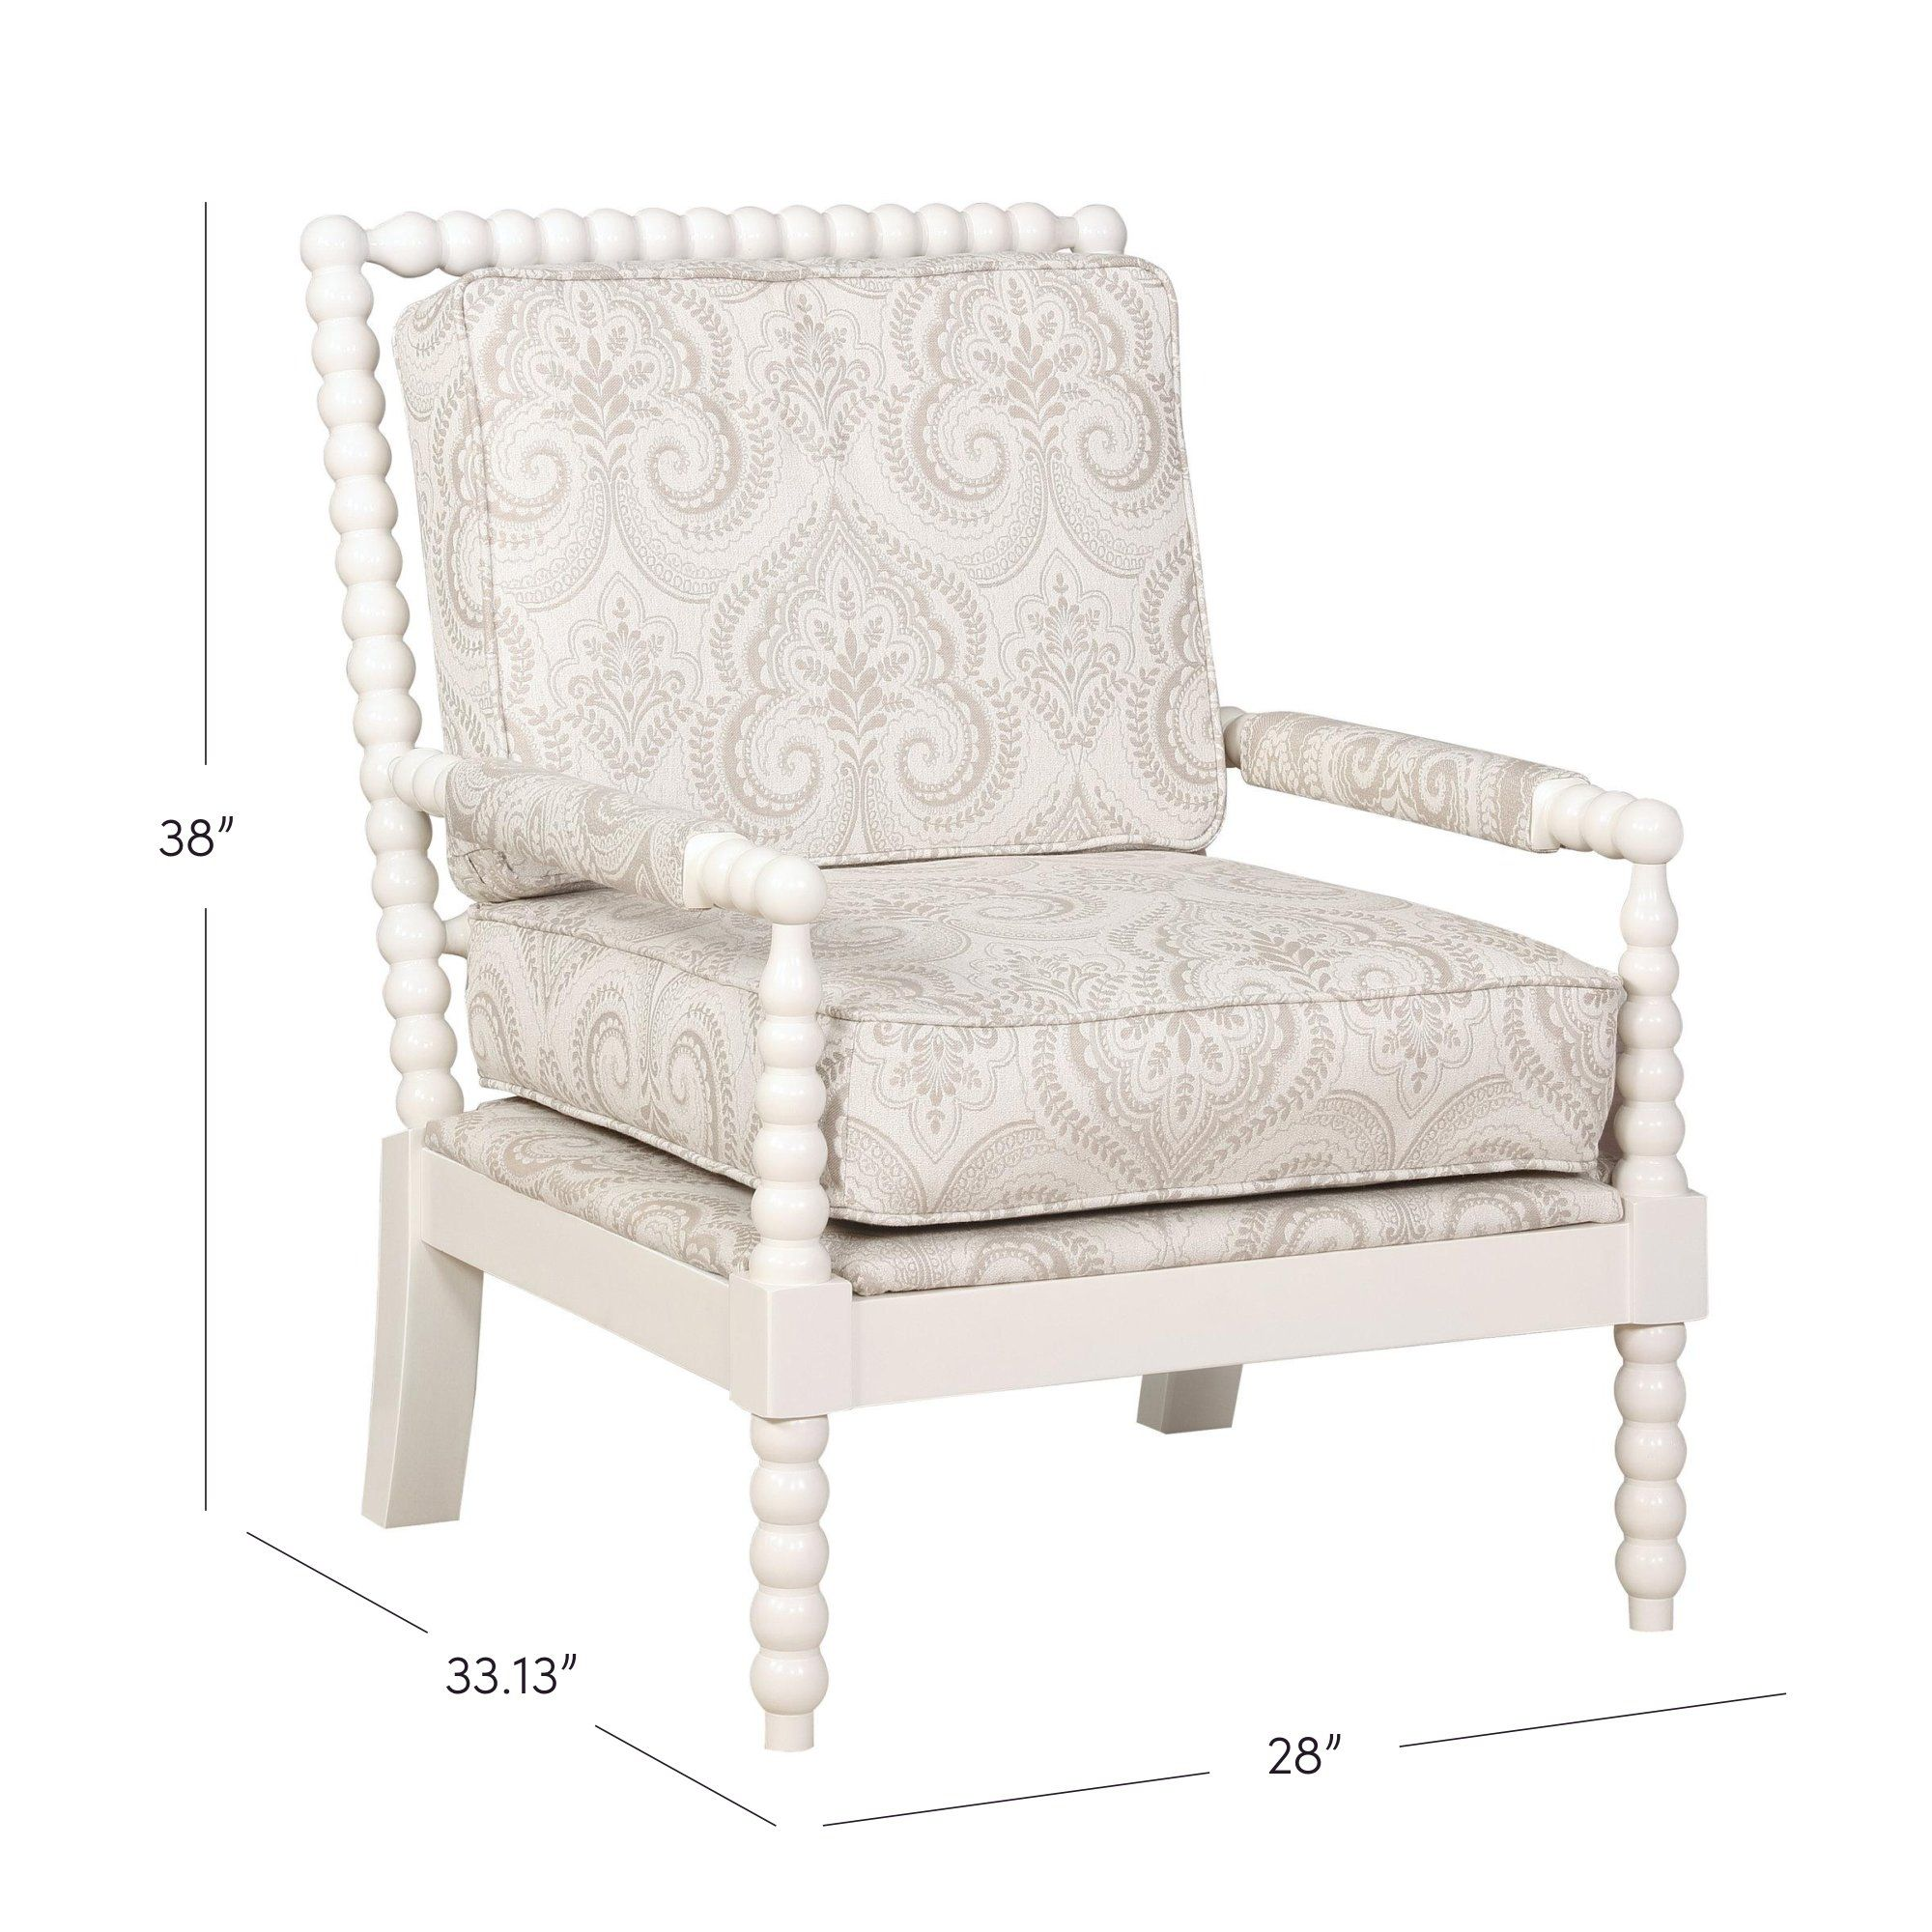 Wifrith Shellplant Spindle Armchair Upholstered Chairs Beige Accent Chair Spindle Chair